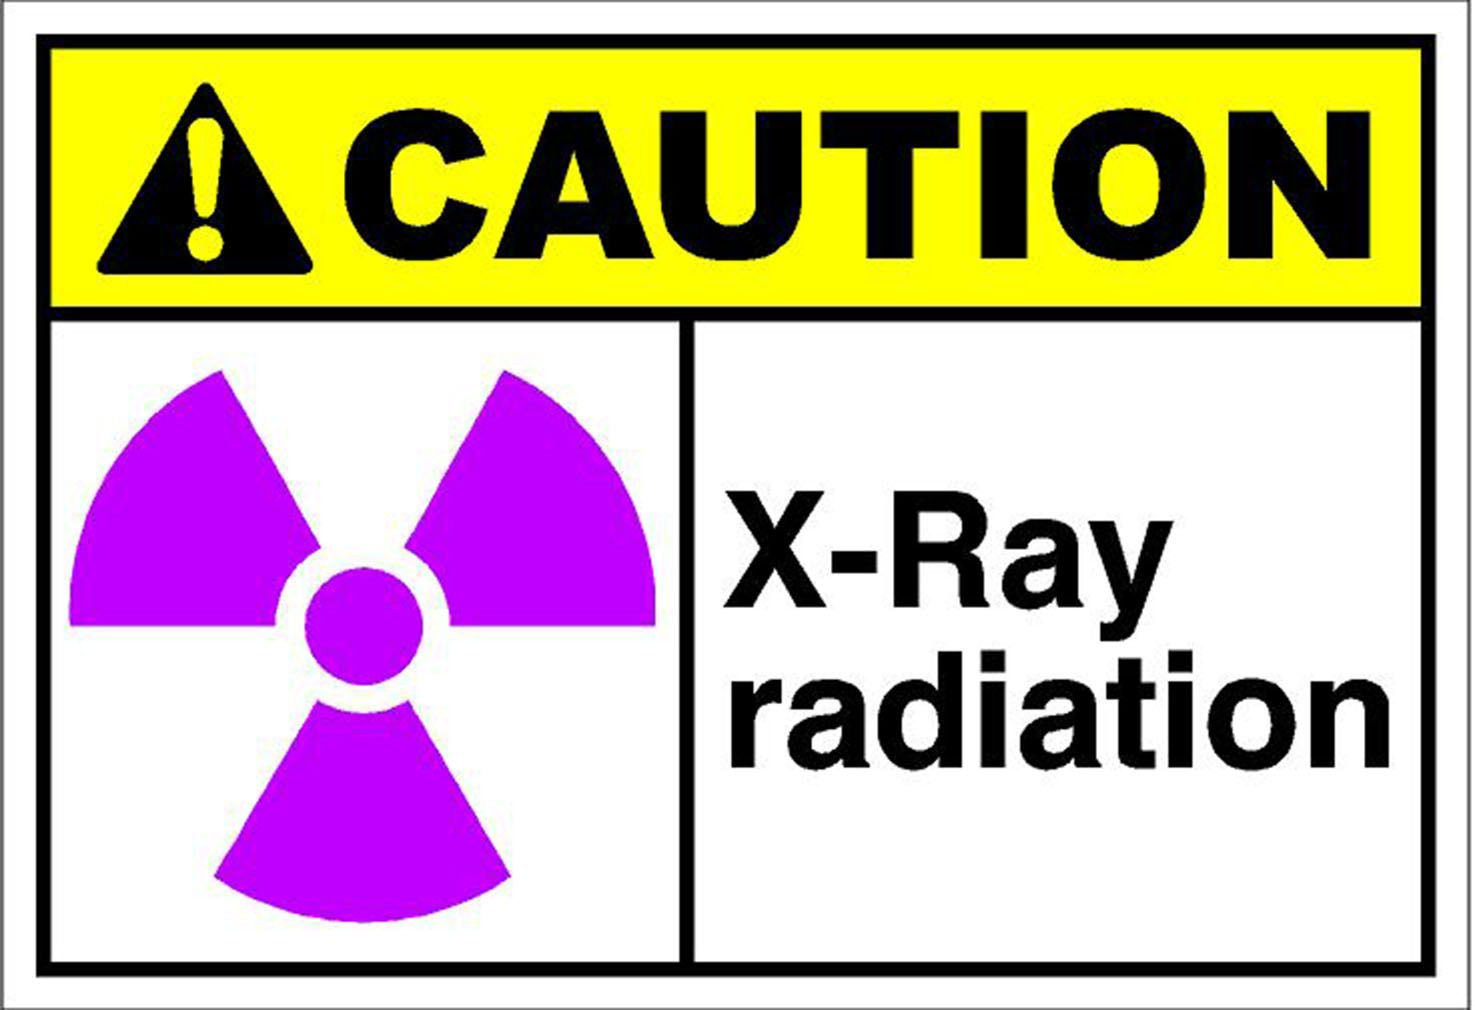 X-Ray Radiation Caution OSHA / ANSI LABEL DECAL STICKER Sticks to Any Surface 10x7